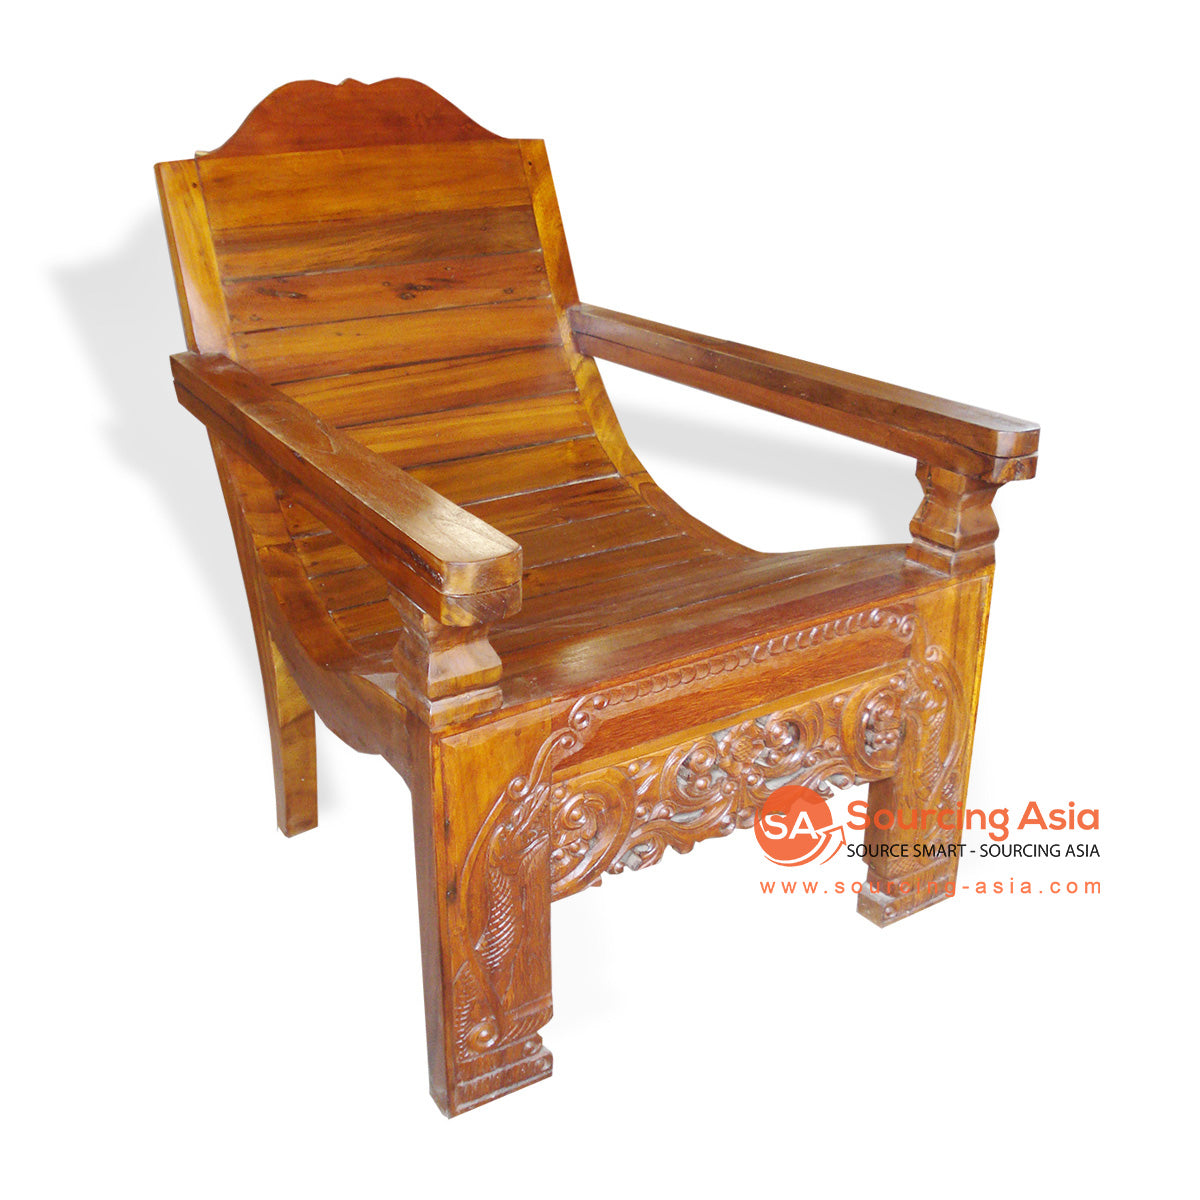 TRG171 JAVANESE LAZY CHAIR